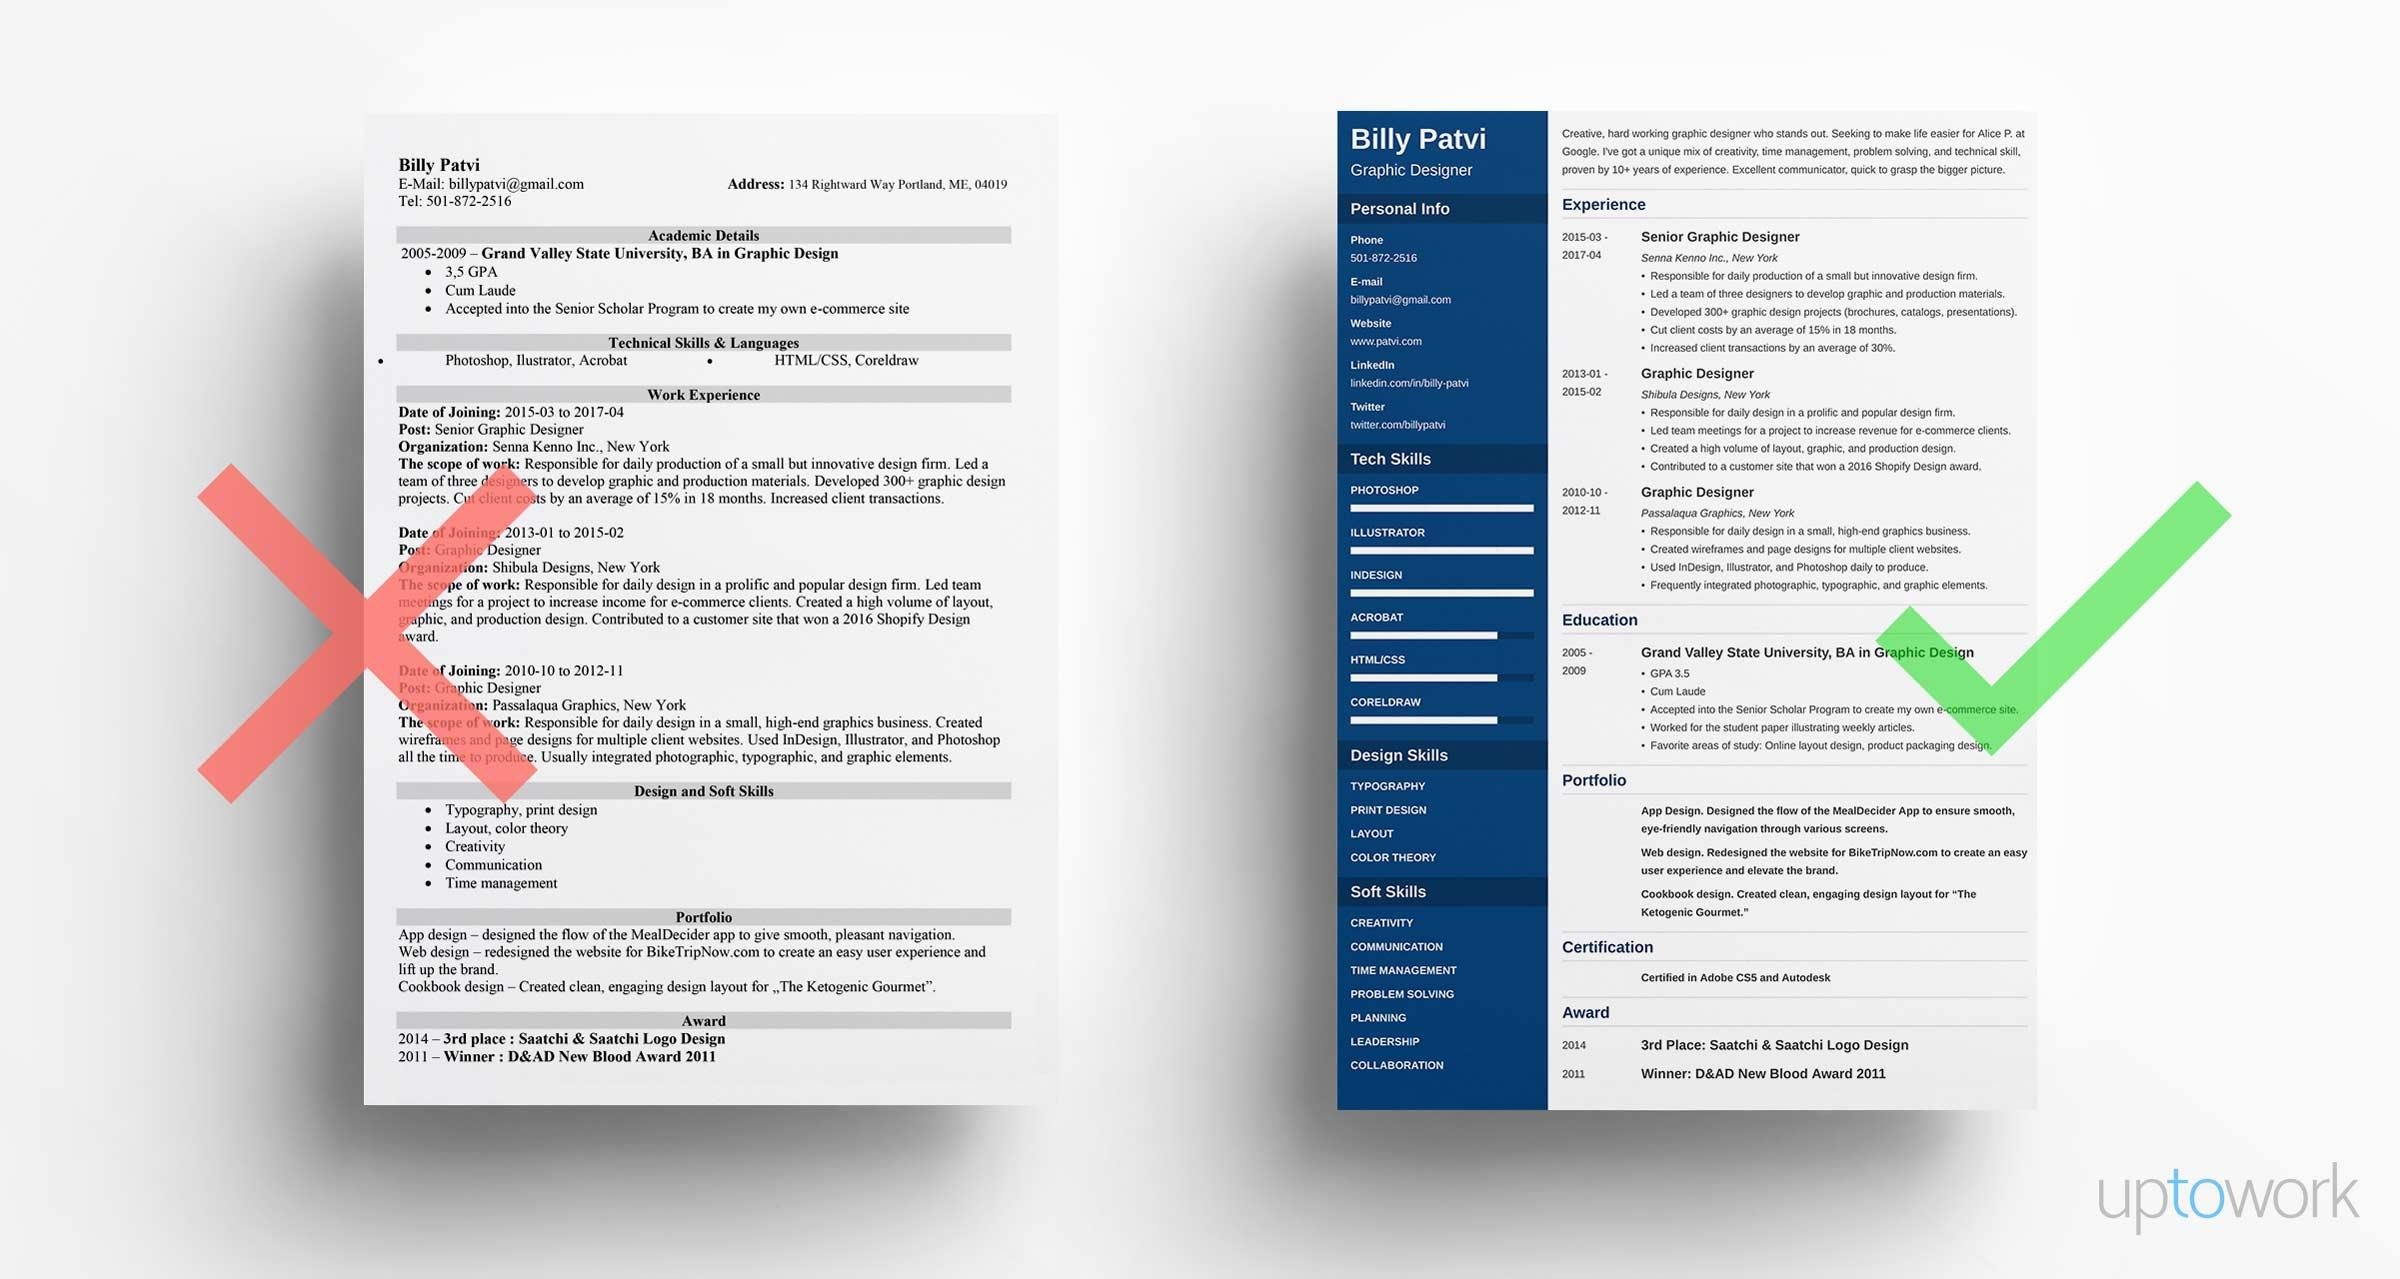 graphic designer resume examples and design tips for sample samples templates angularjs Resume Graphic Designer Resume Sample